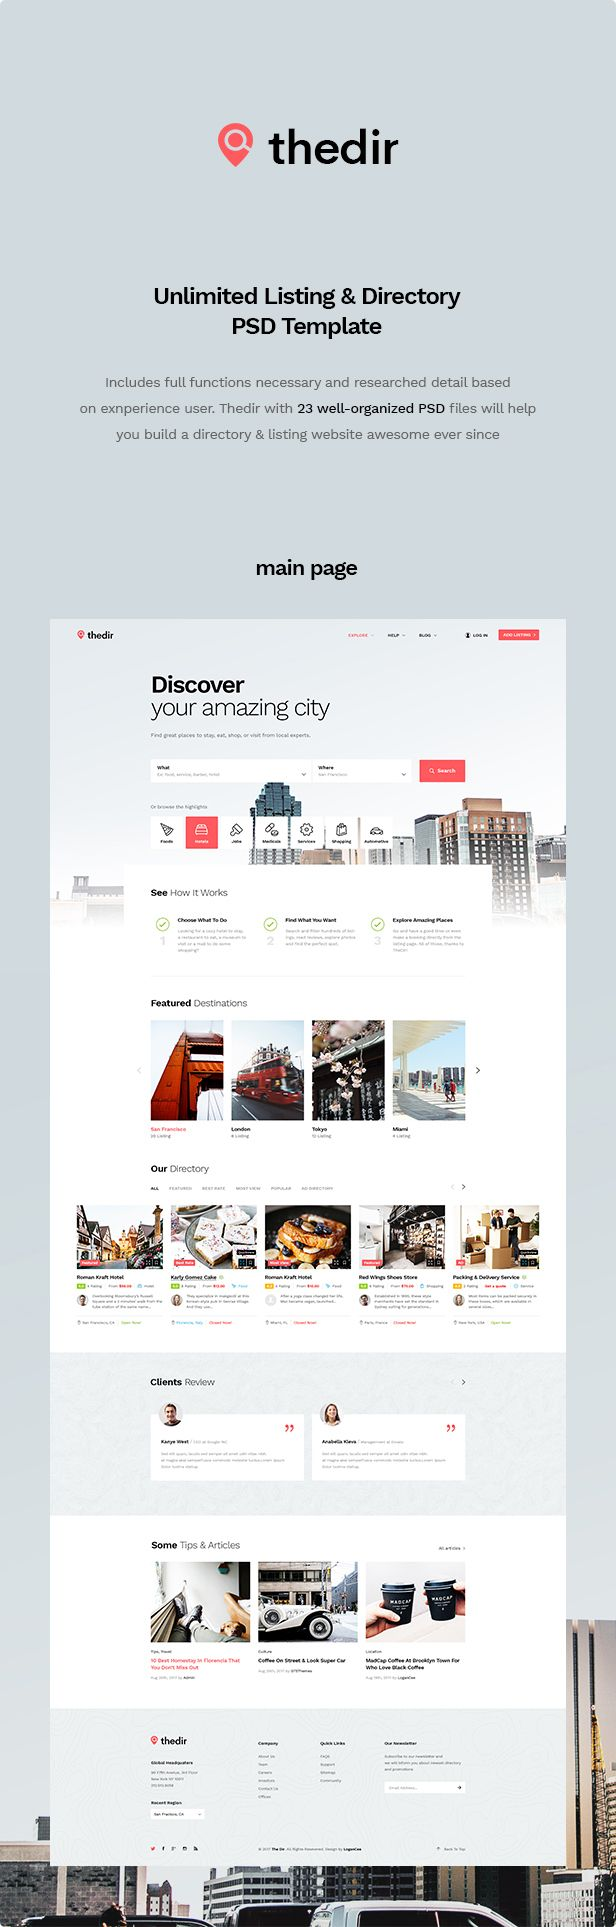 Thedir | Unlimited Listing & Directory PSD Template - 4